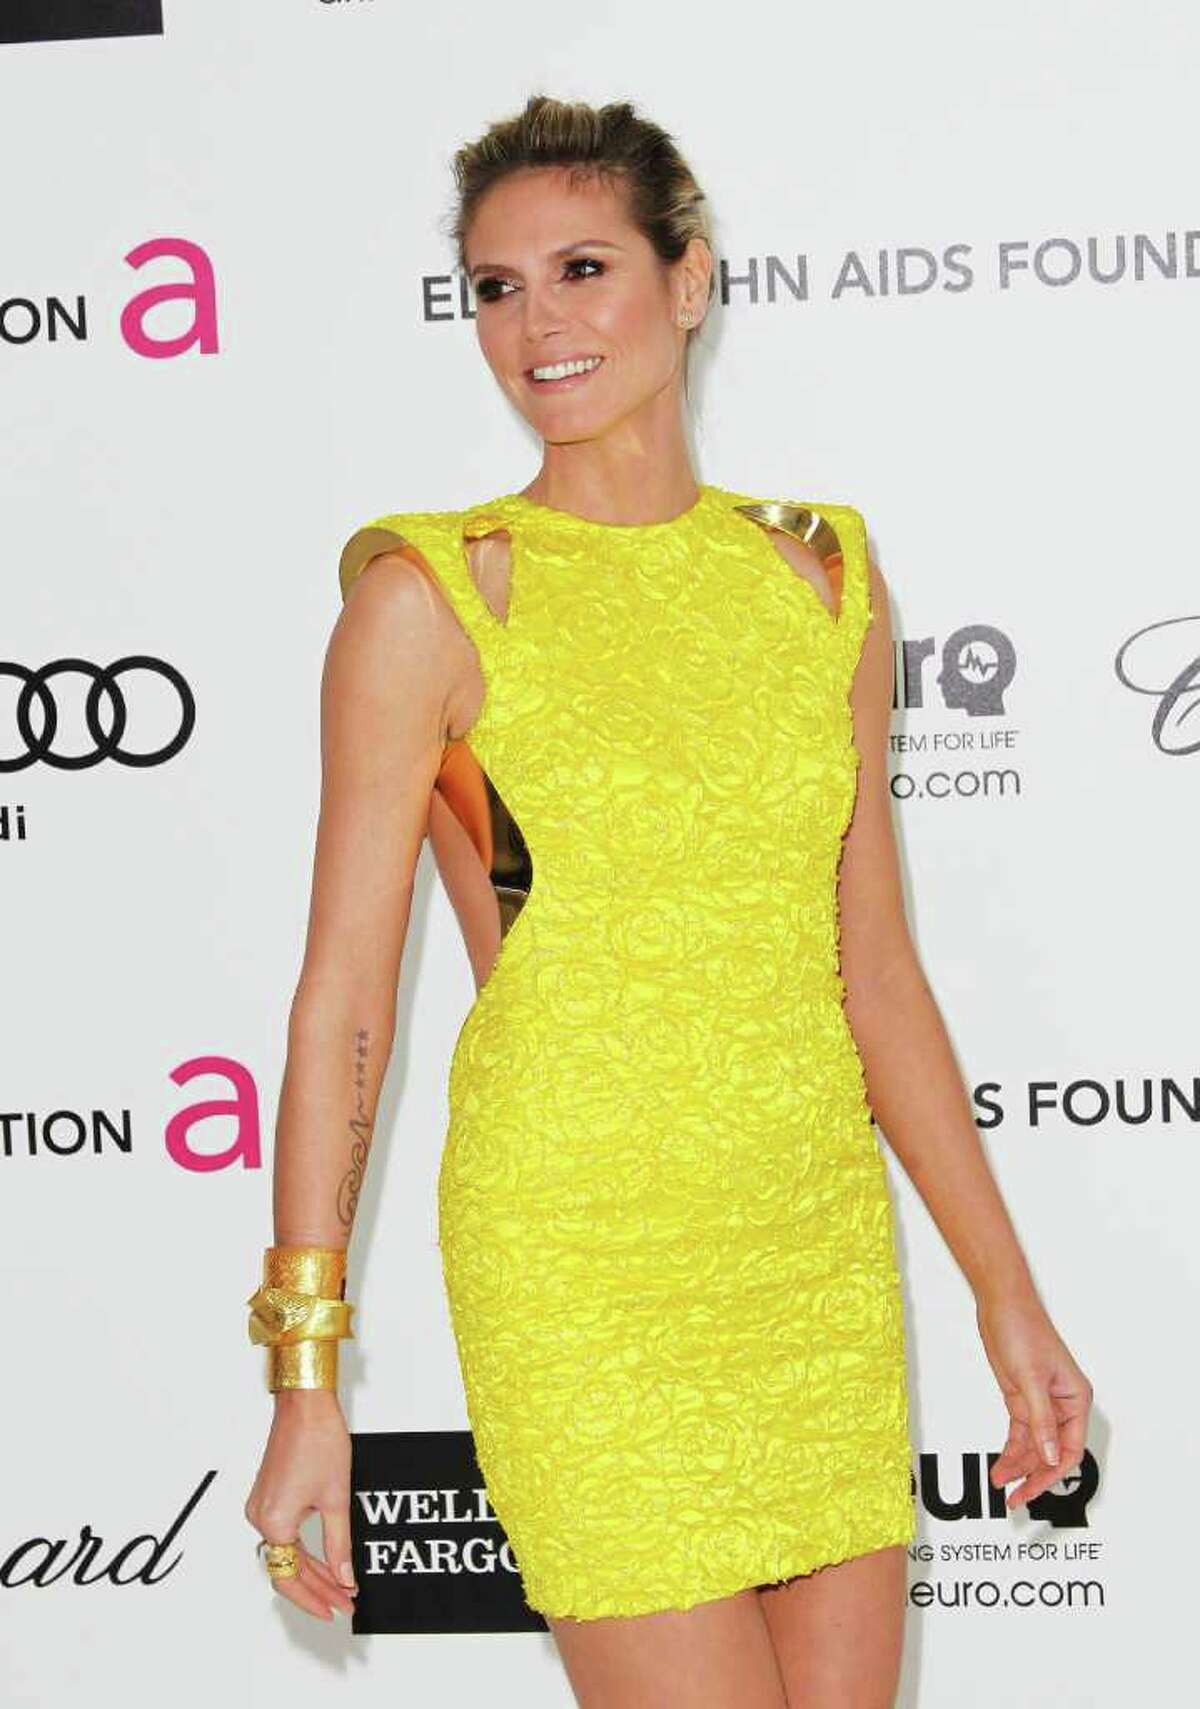 TV Personality Heidi Klum arrives at the 20th Annual Elton John AIDS Foundation's Oscar Viewing Party held at West Hollywood Park on February 26, 2012 in West Hollywood, California.